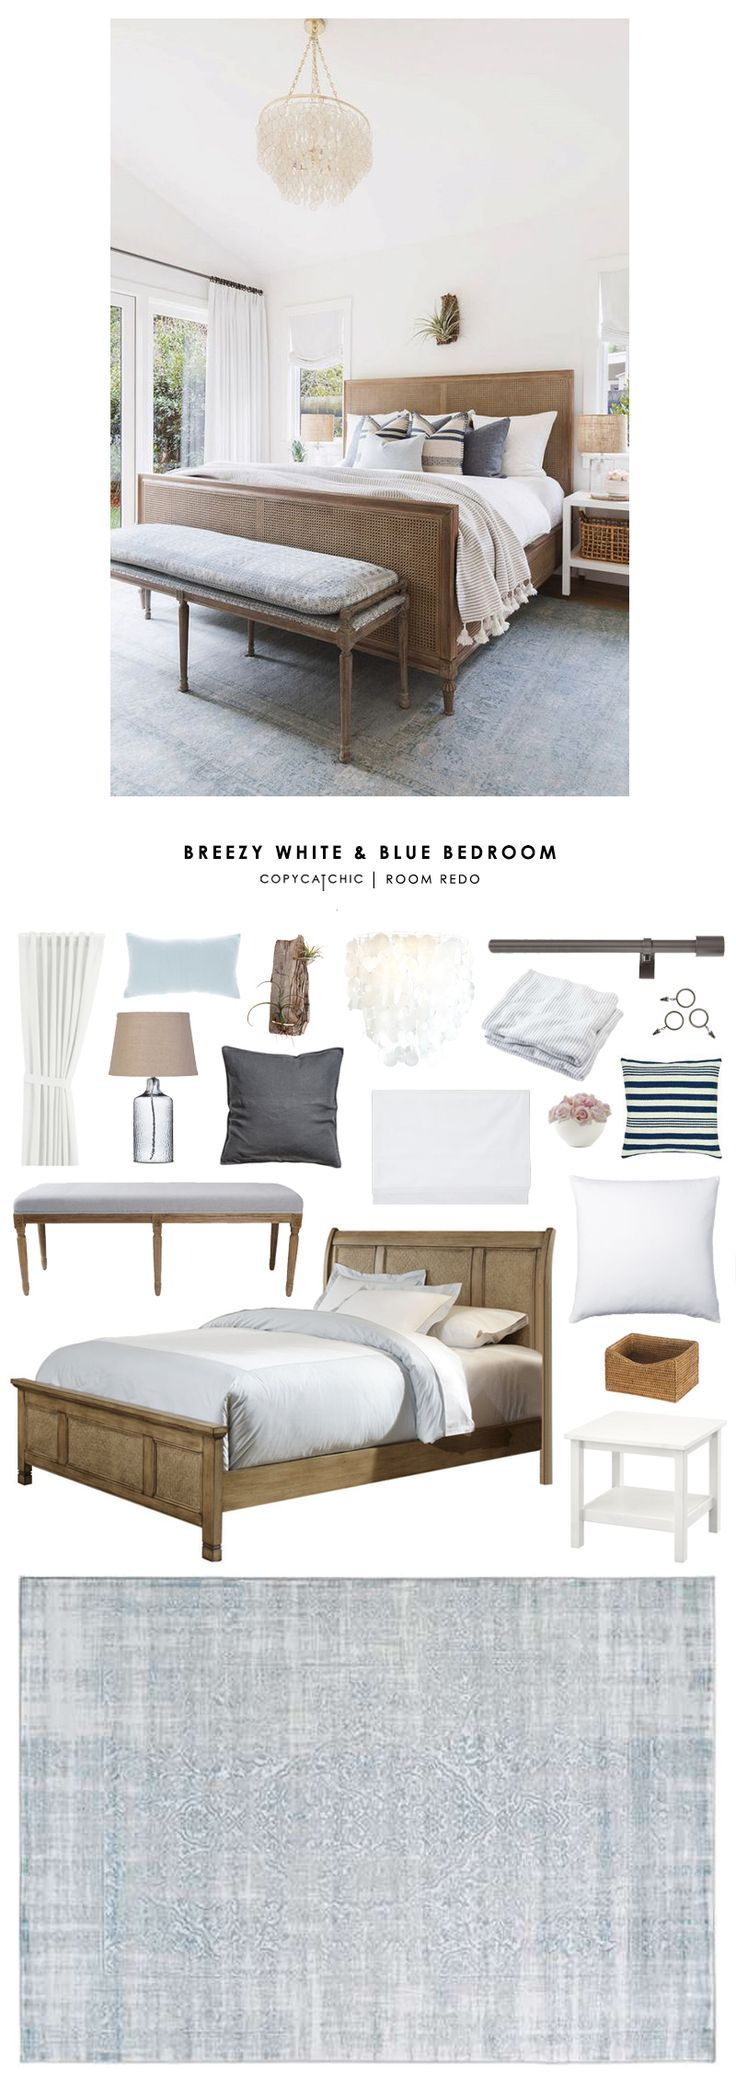 Copy Cat Chic Room Redo | Breezy White And Blue Bedroom   Copy Cat Chic